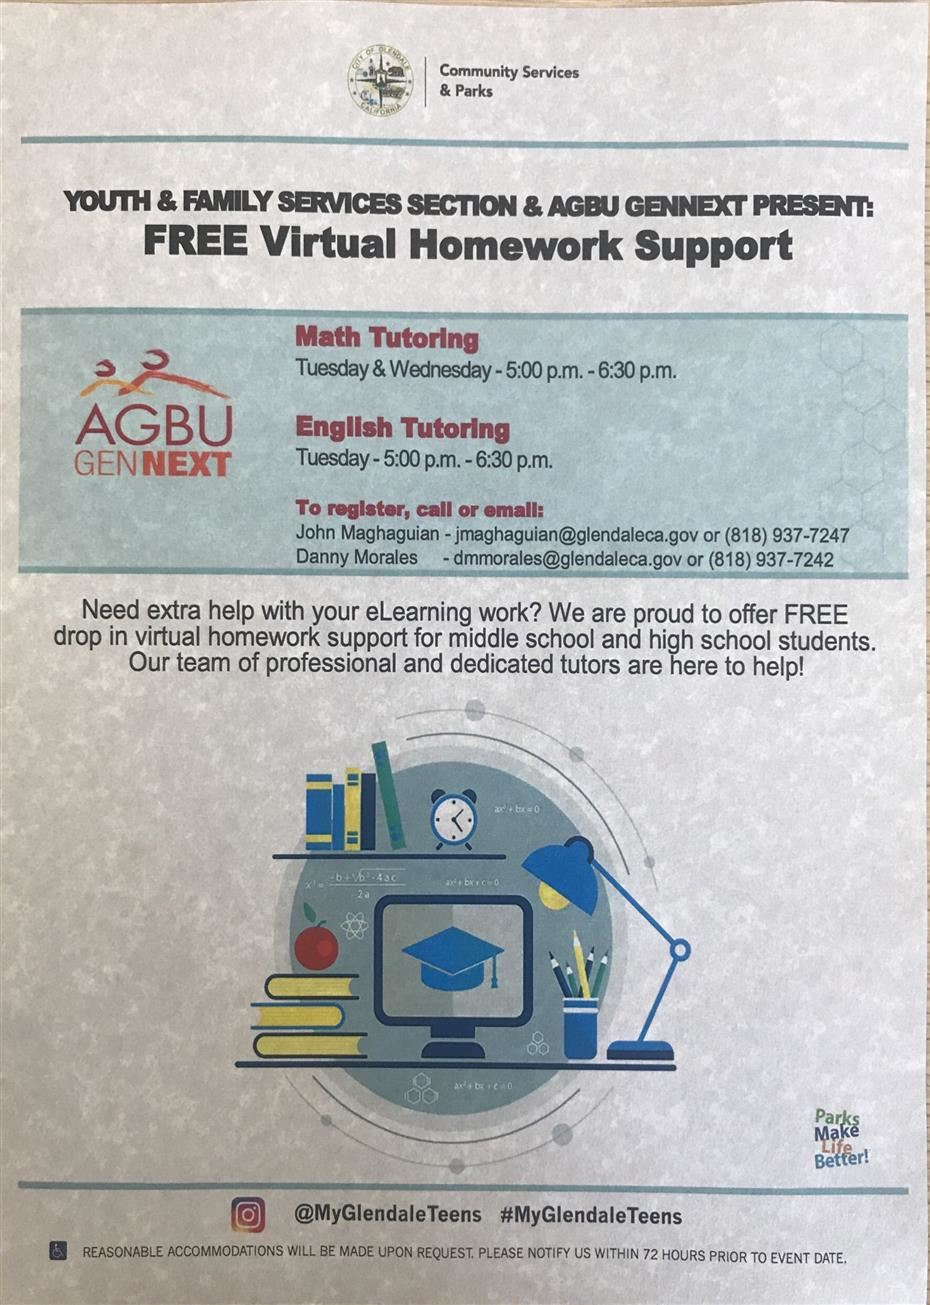 Attached is a flyer for FREE virtual homework support